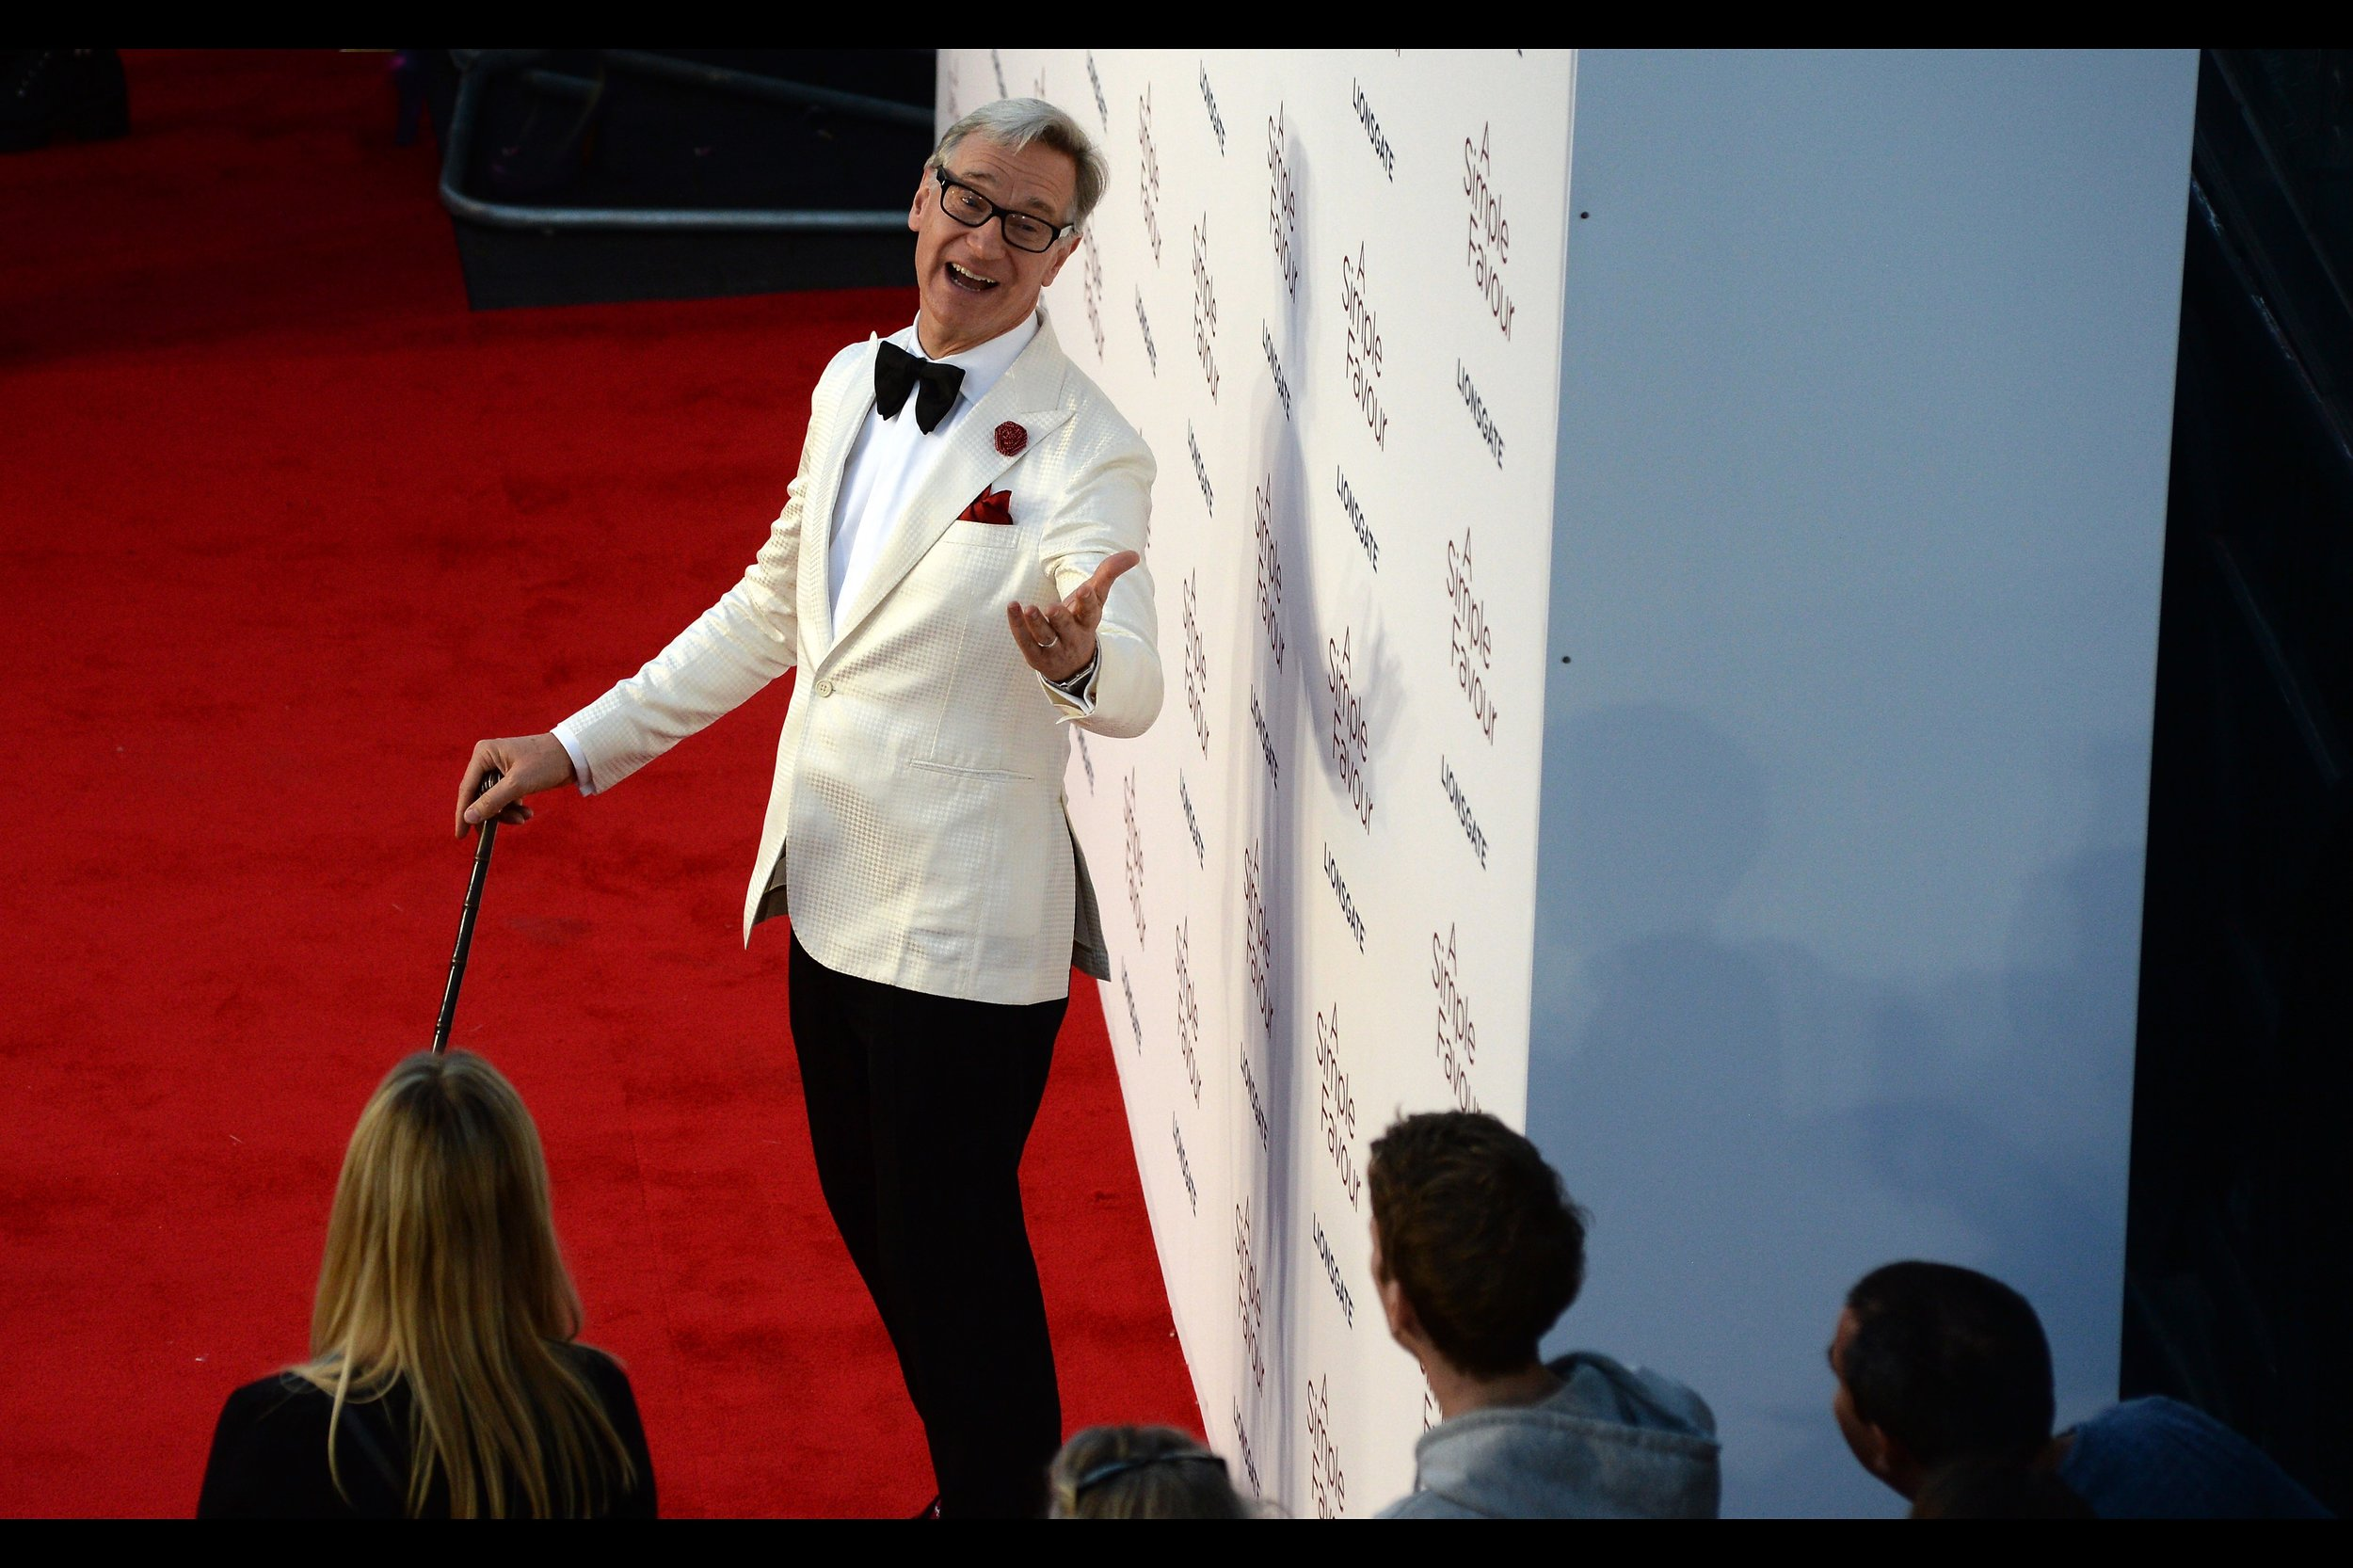 """""""You'll never be as dapper as me… if you were, it would make me less dapper, which would make you less dapper, and before we knew it, we'd be stuck in a spiraling out-of-control cycle where we might as well both be wearing rags""""  - Director Paul Feig."""